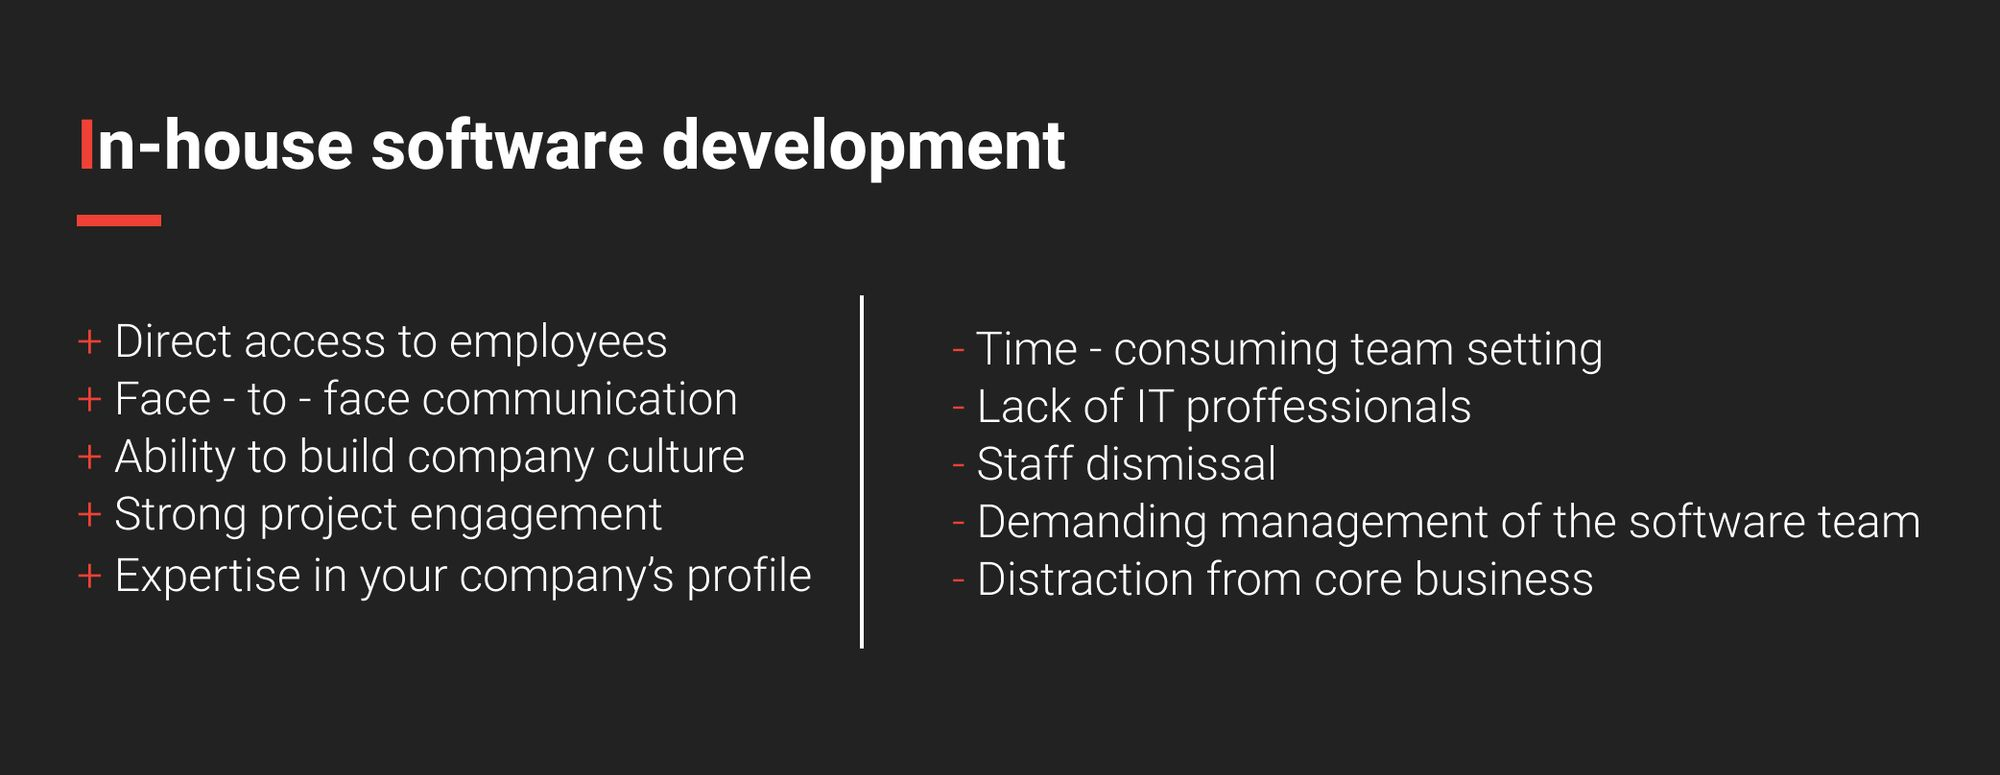 Pros and cons of in-house software development